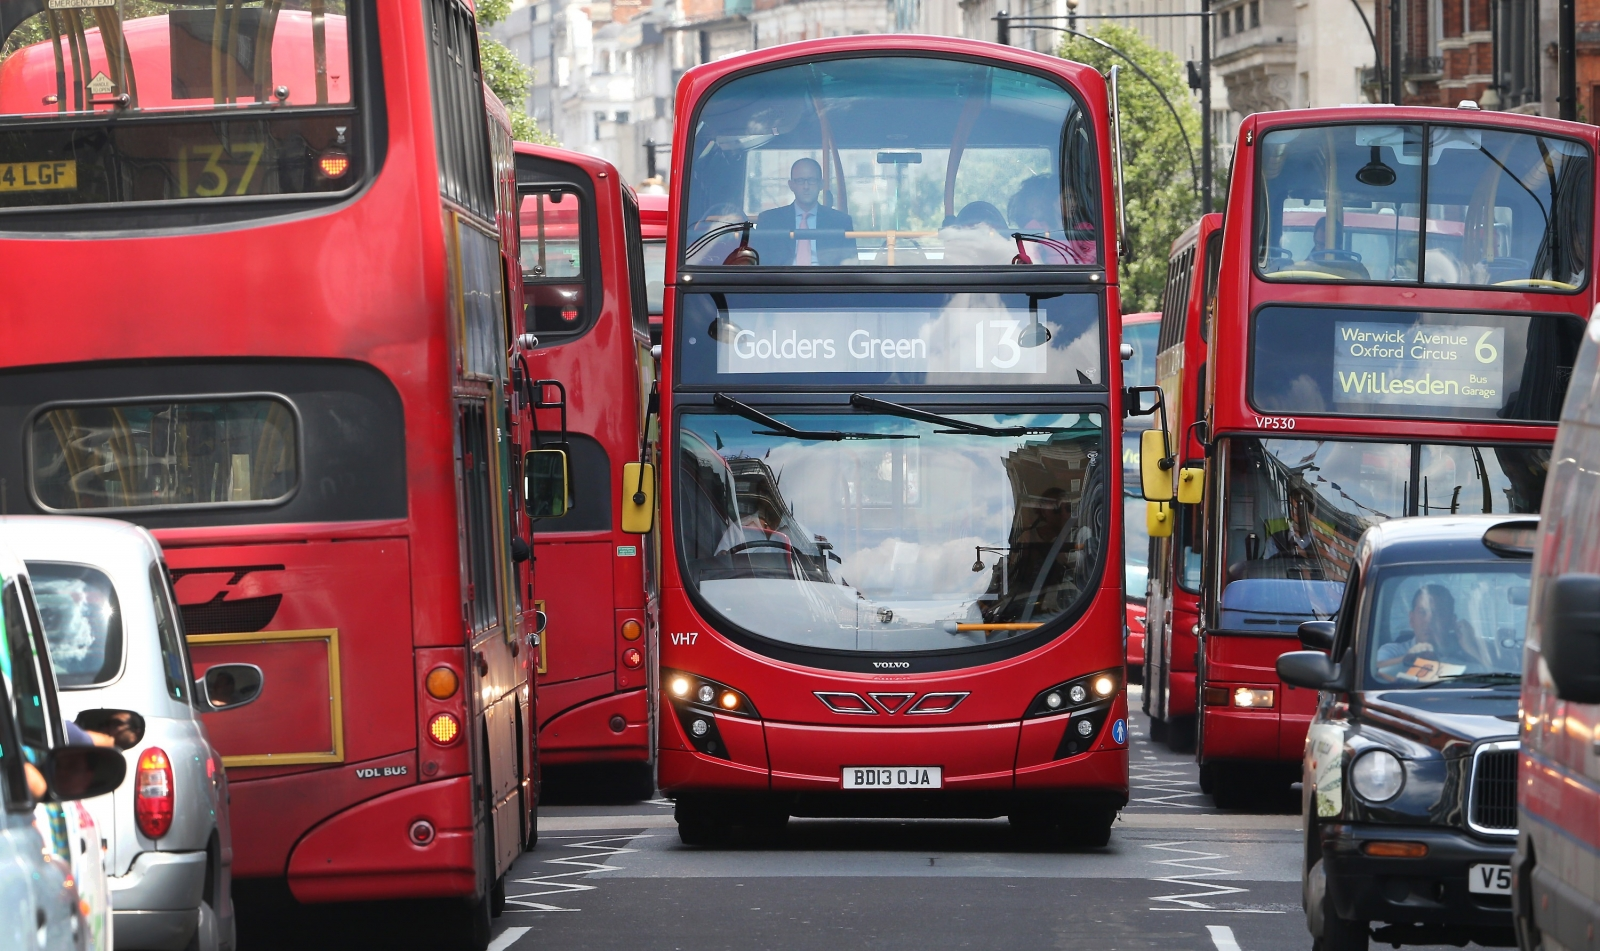 London bus services